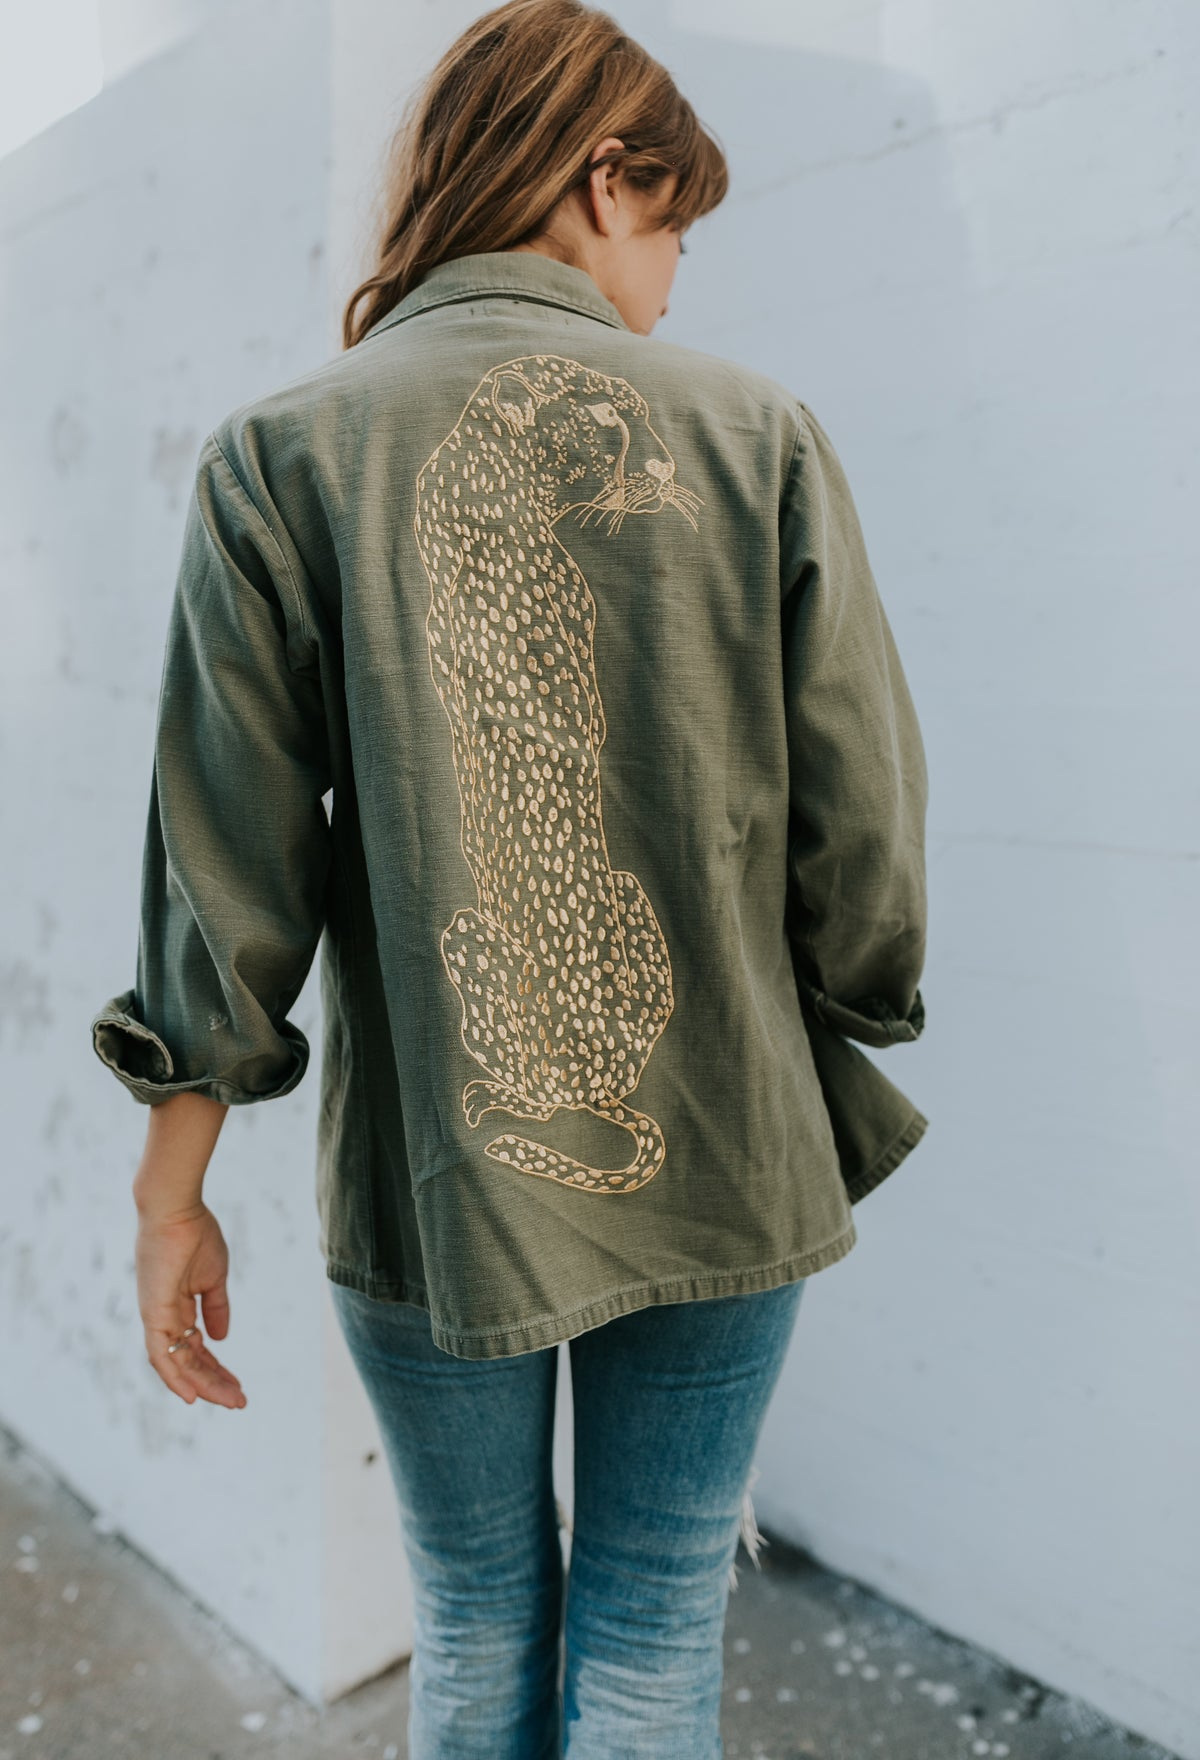 The Vintage Army Jacket